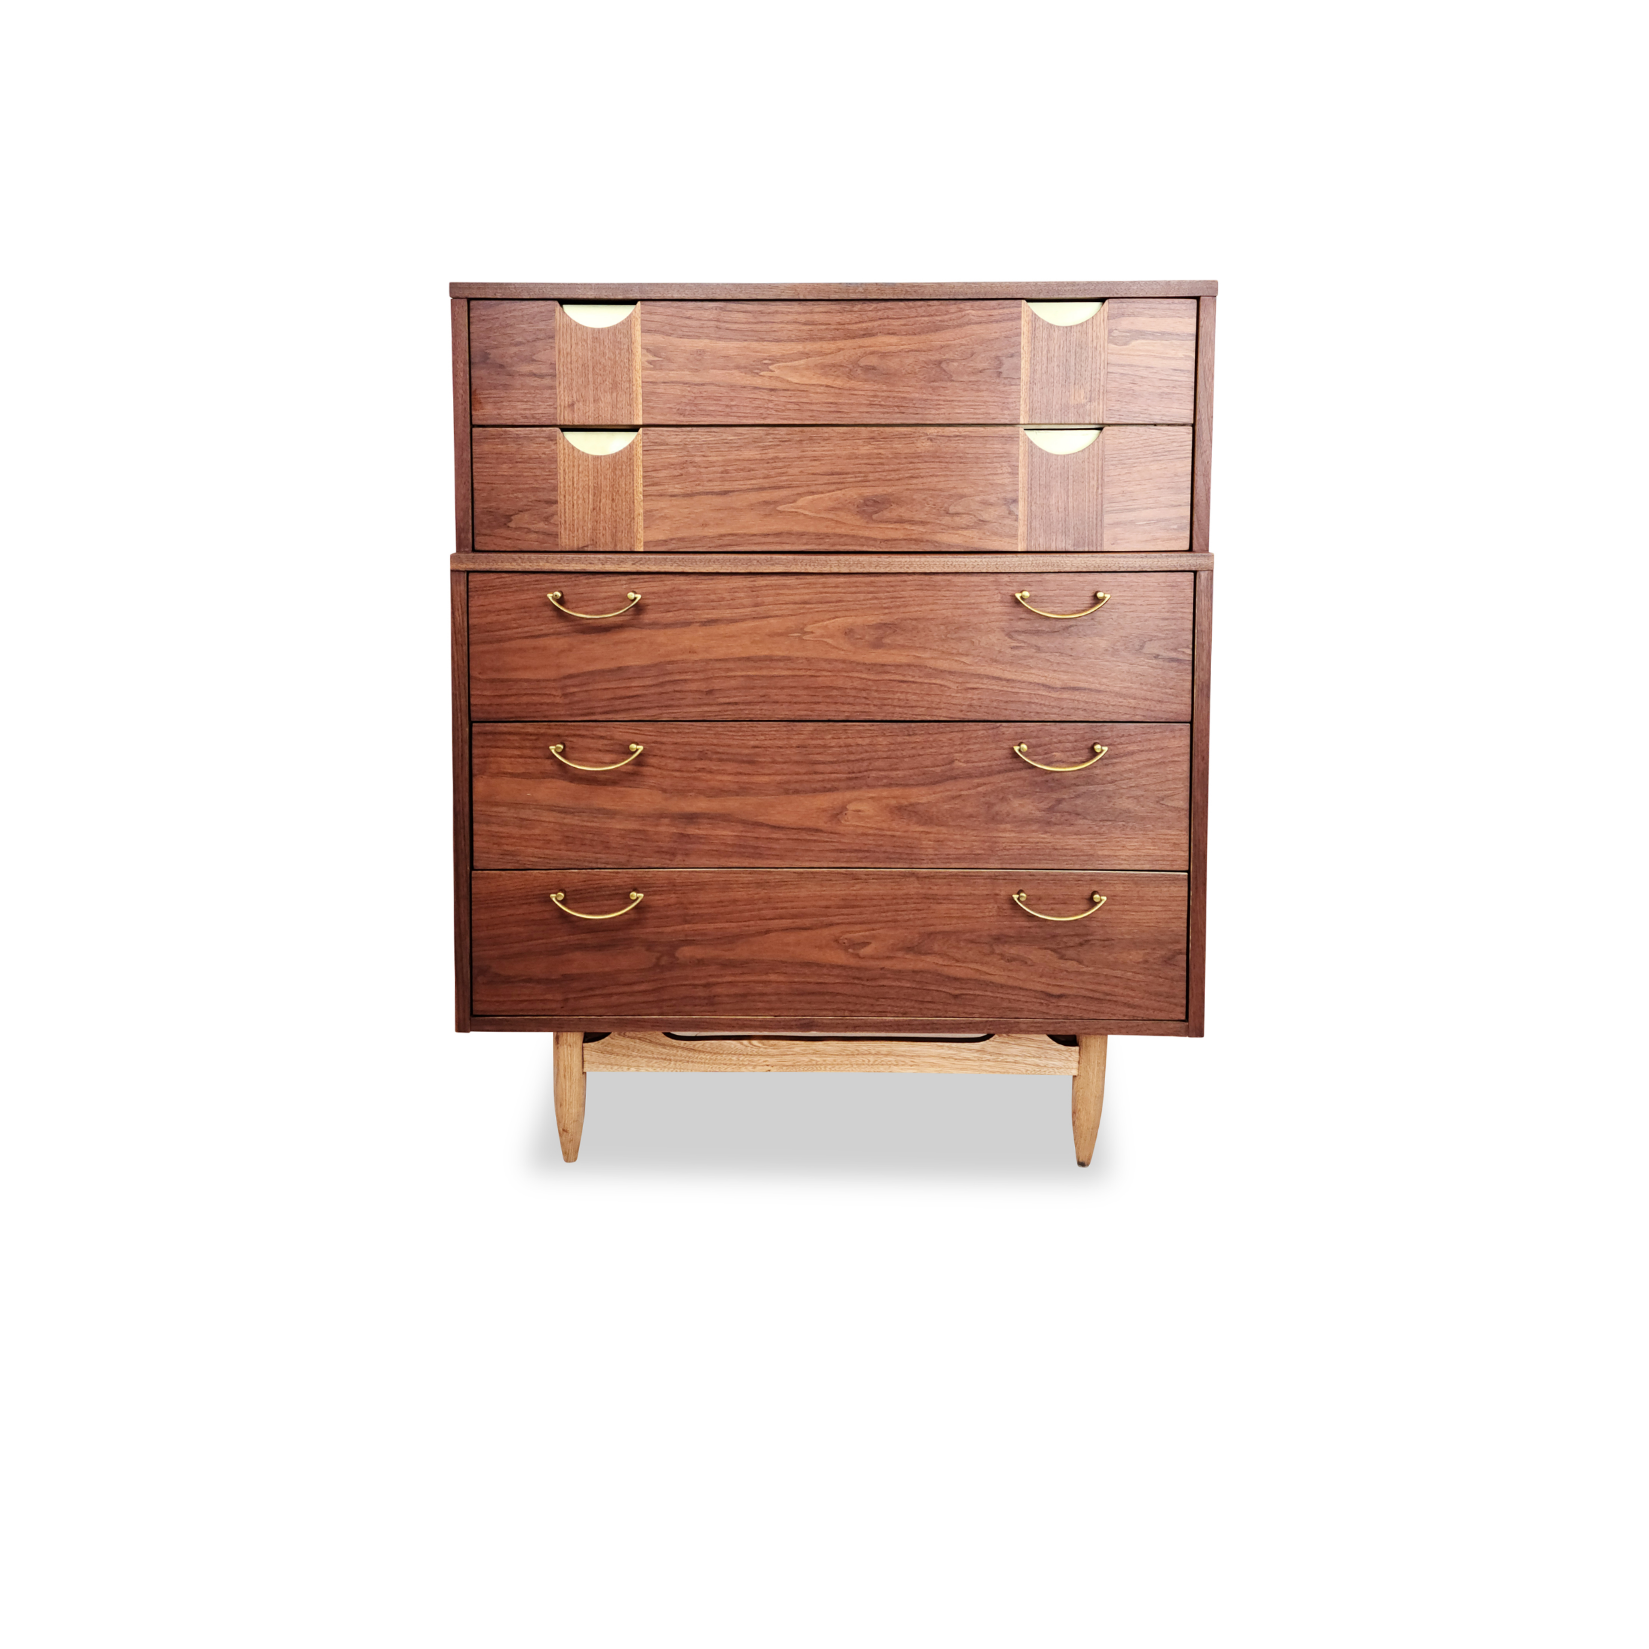 Vintage Walnut and Brass Highboy Dresser